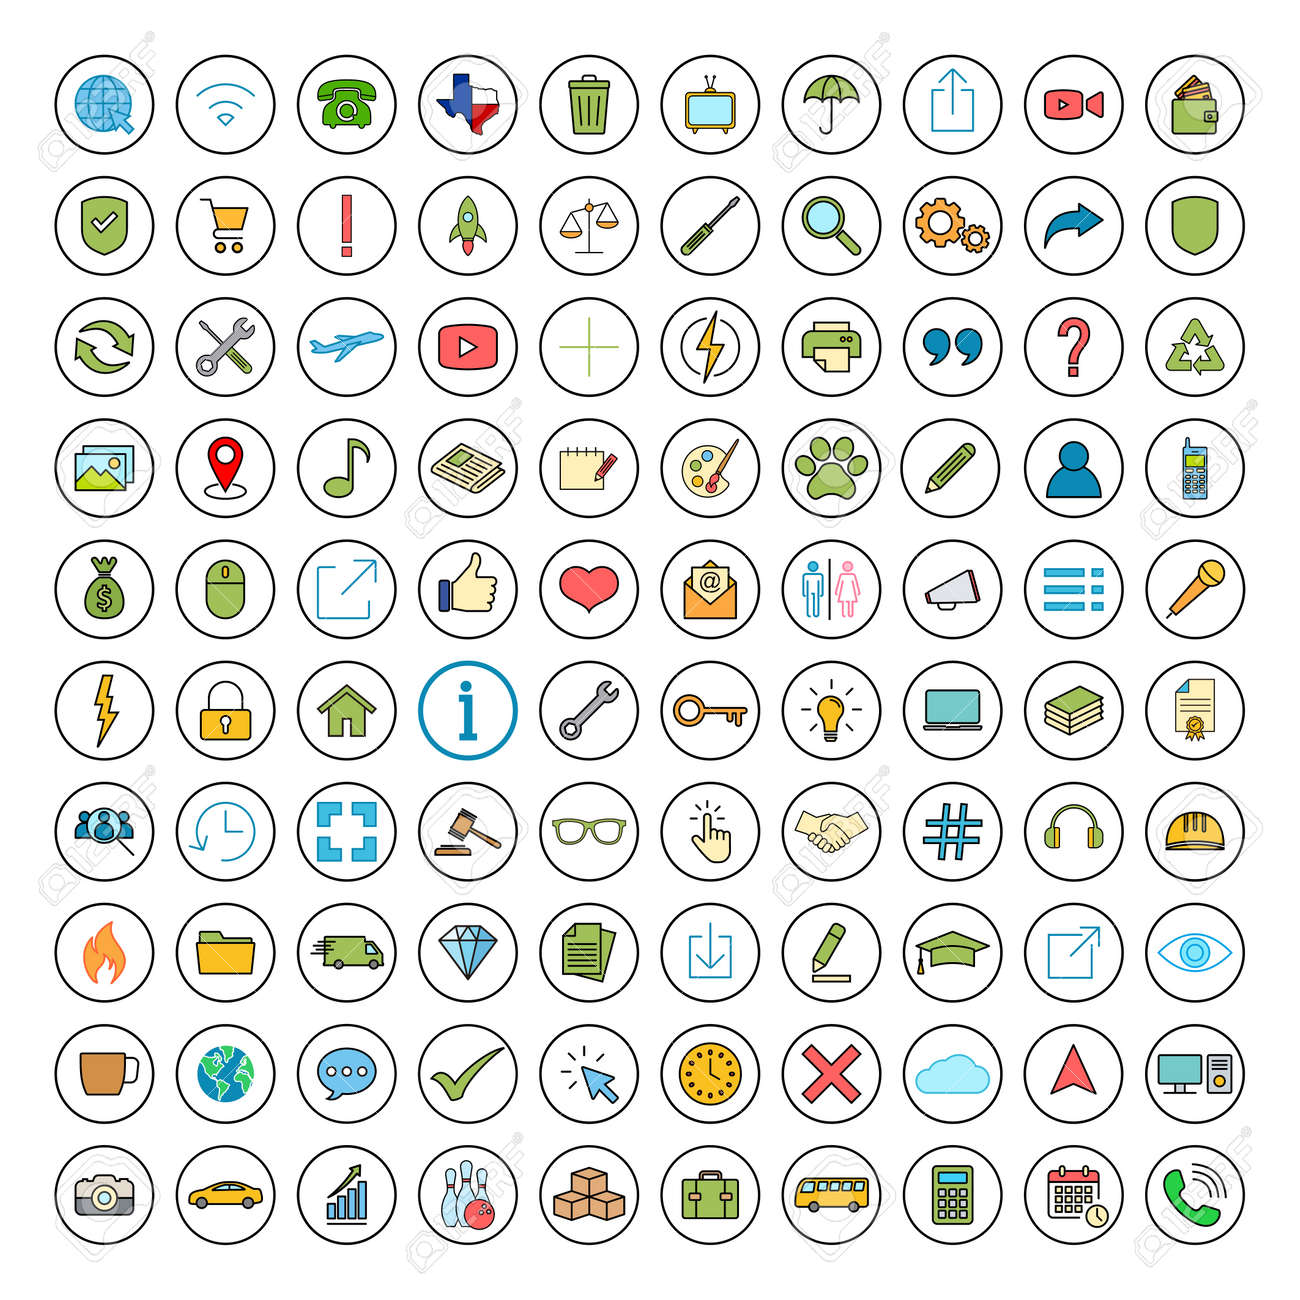 Web icon set. Contact us icon set. Business, ecommerce, finance, accounting. - 168081109